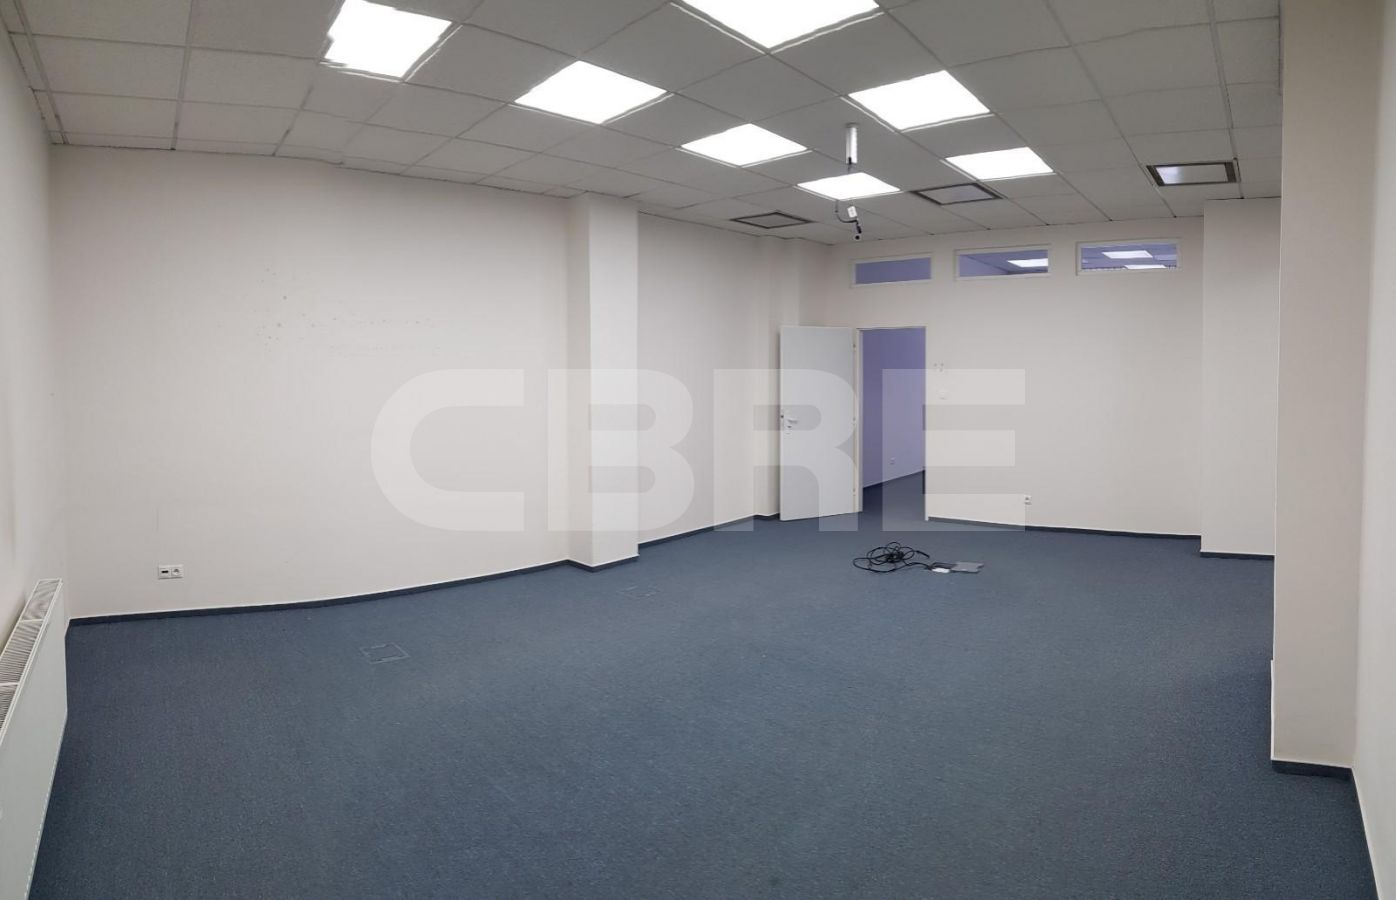 Hurbanova 4, Žilina | Offices for rent by CBRE | 1